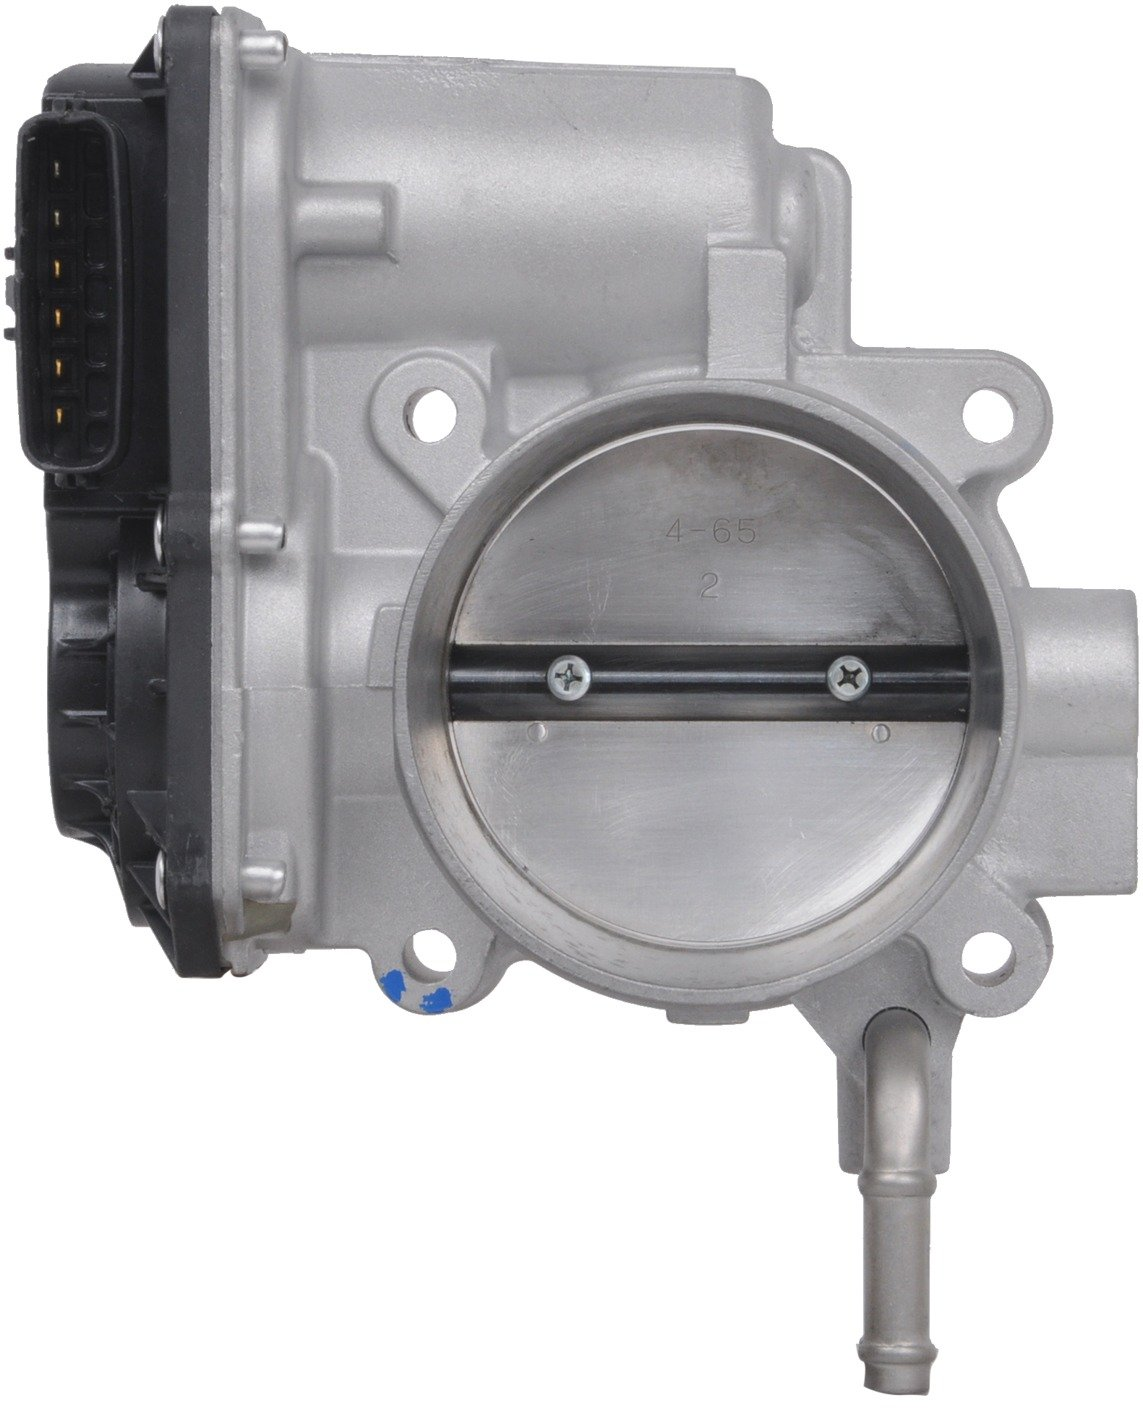 A1 Cardone 67-8015 Remanufactured Throttle Body, 1 Pack